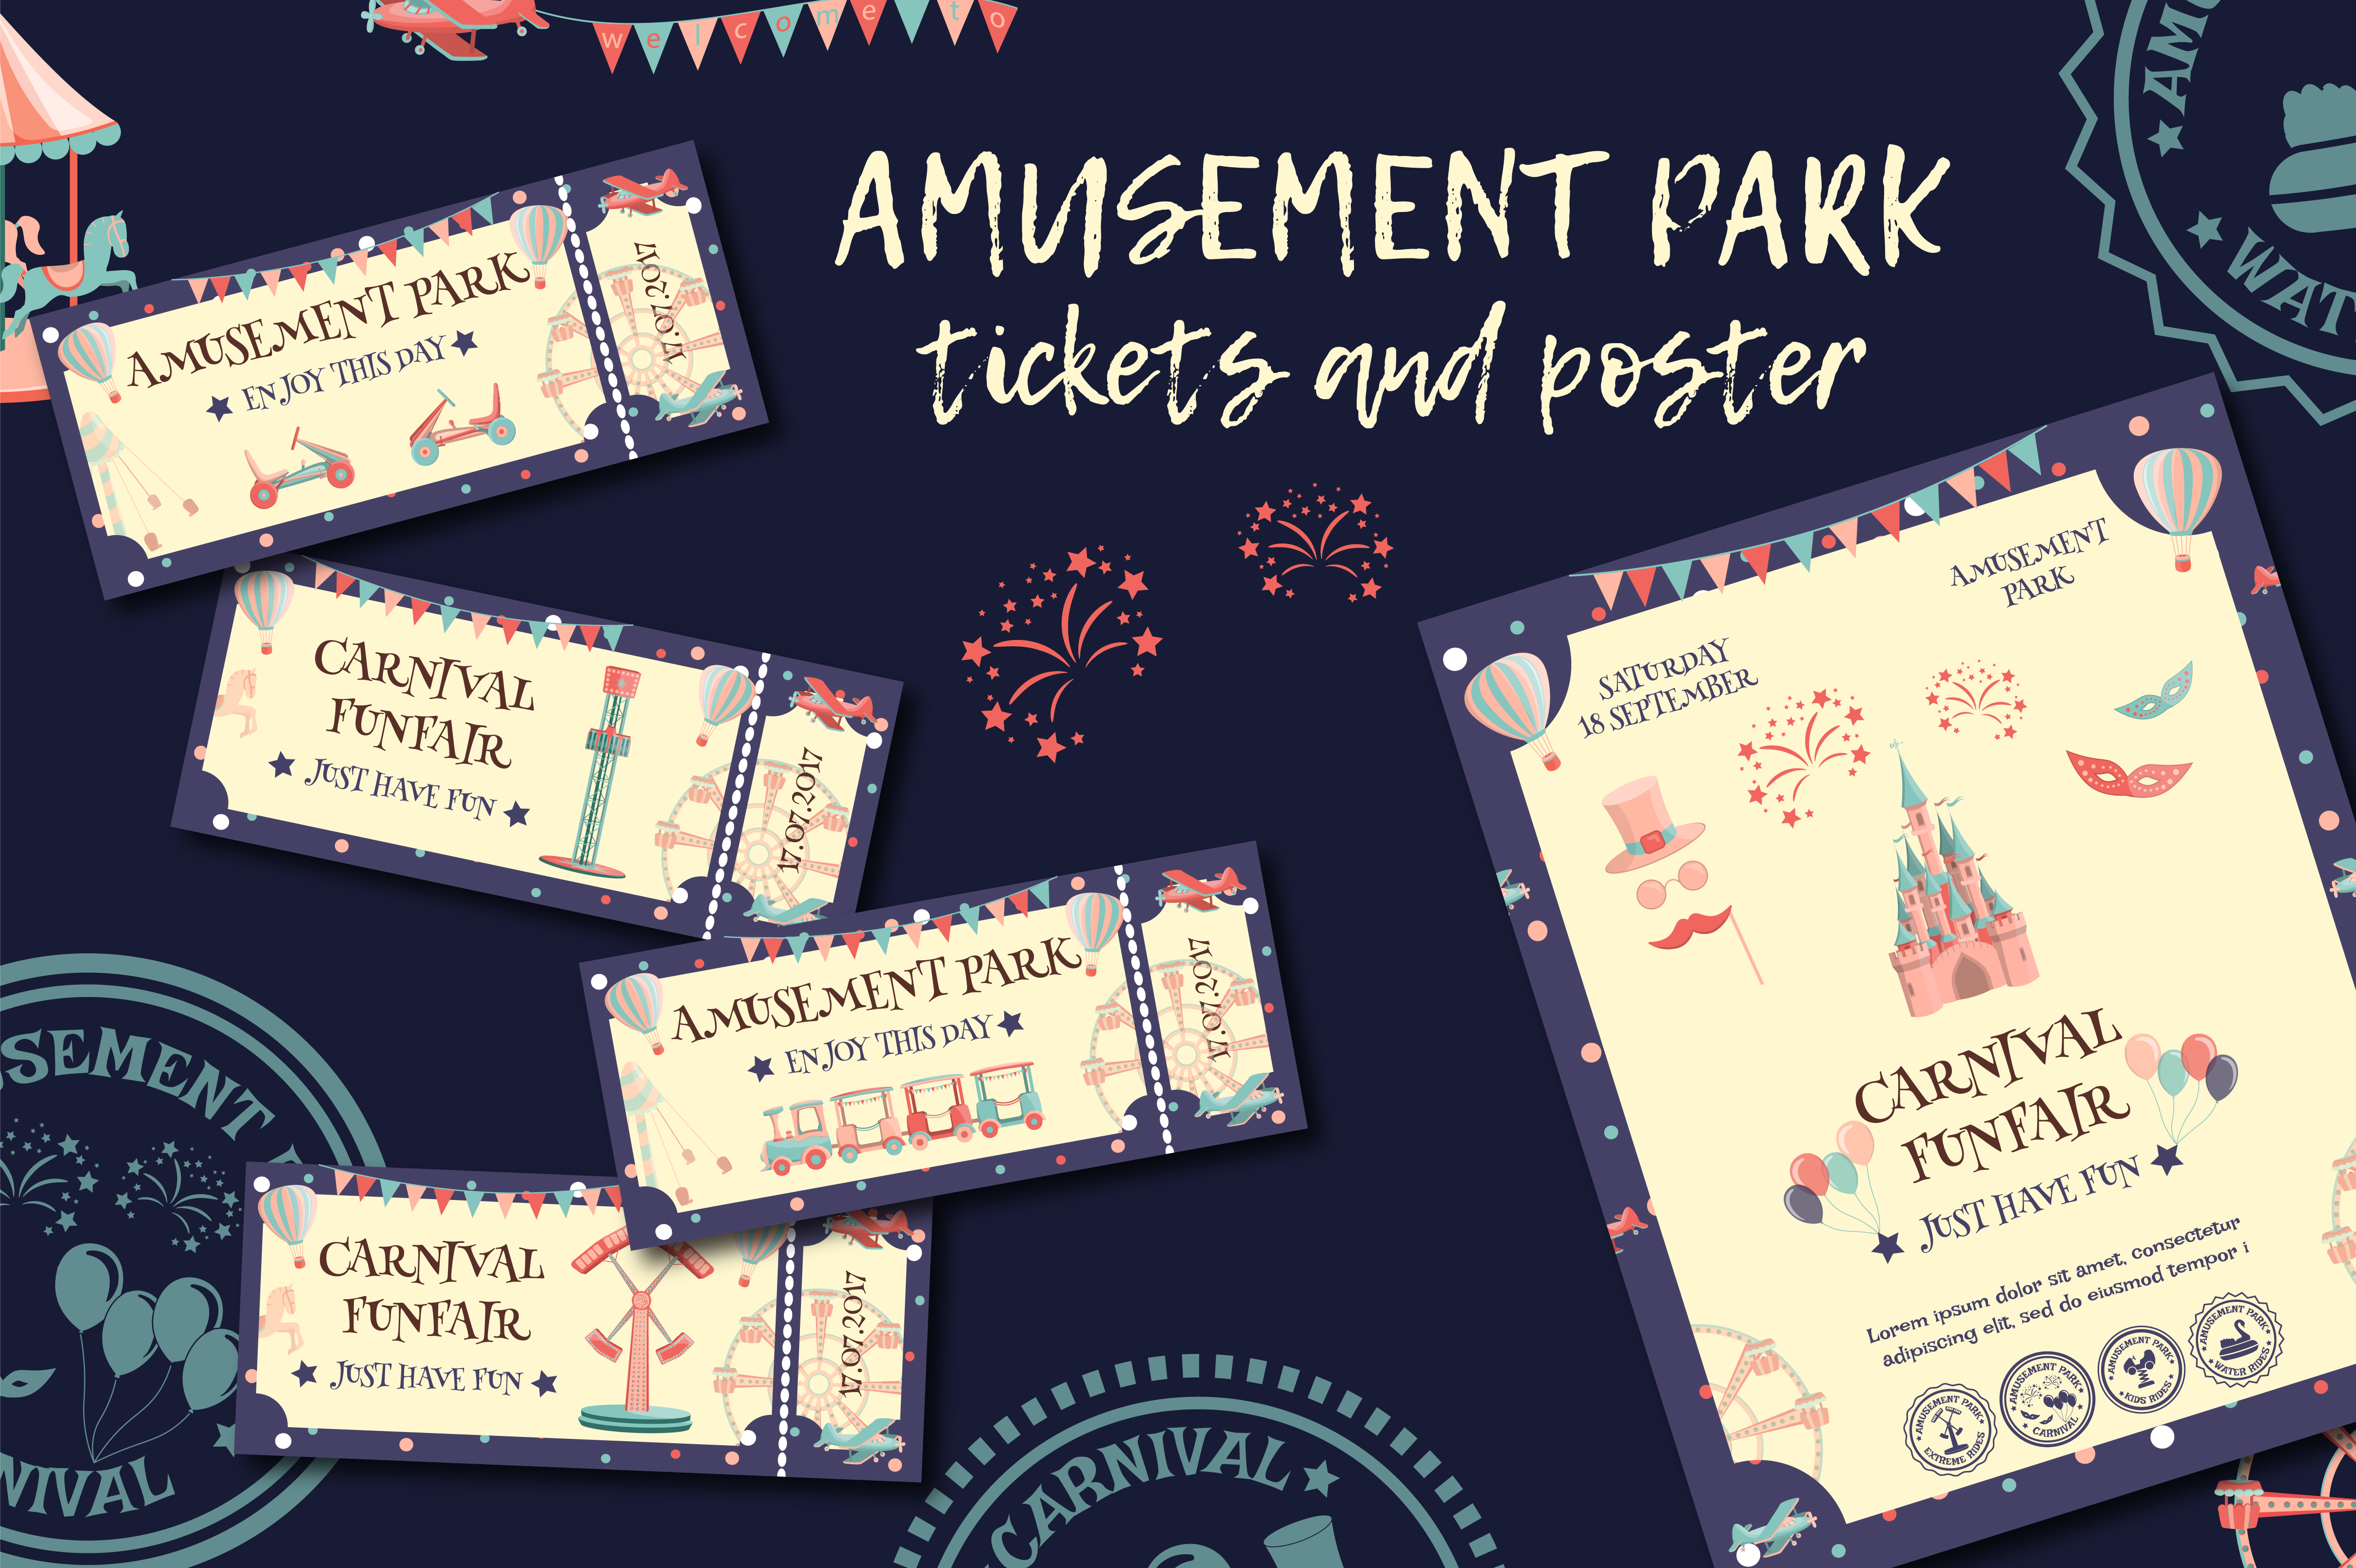 Amusement Park Tickets and Poster Template Graphic Graphic Templates By butus.cm